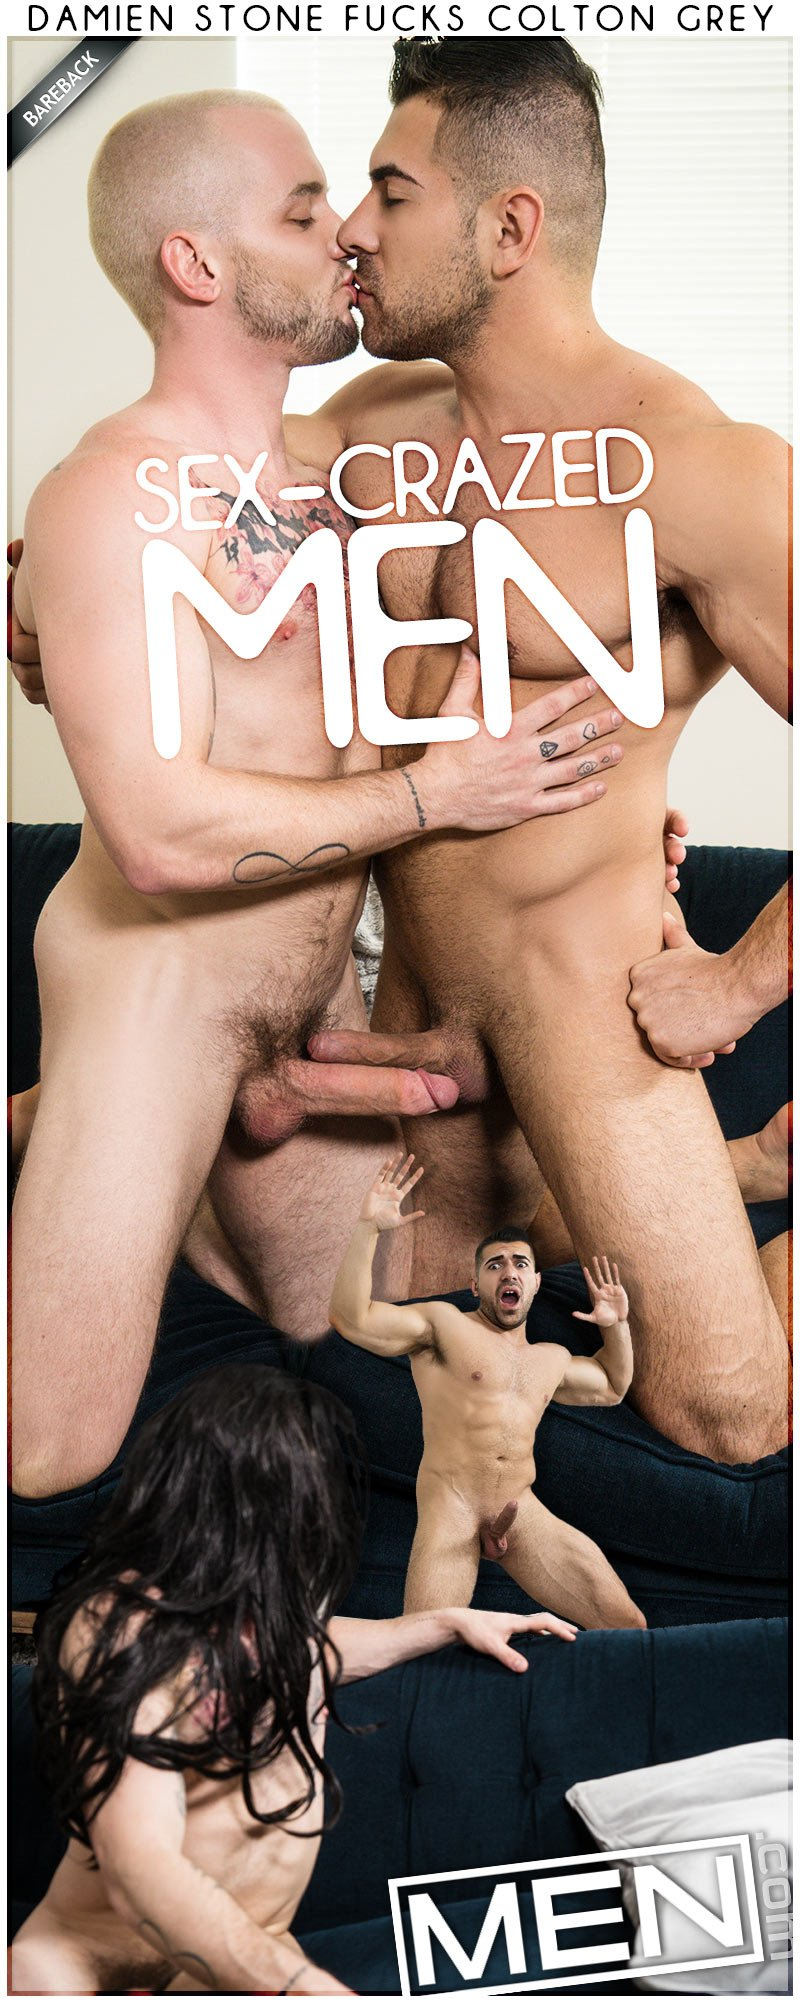 Sex-Crazed Men, Part One (Damien Stone Fucks Colton Grey) at Str8 To Gay